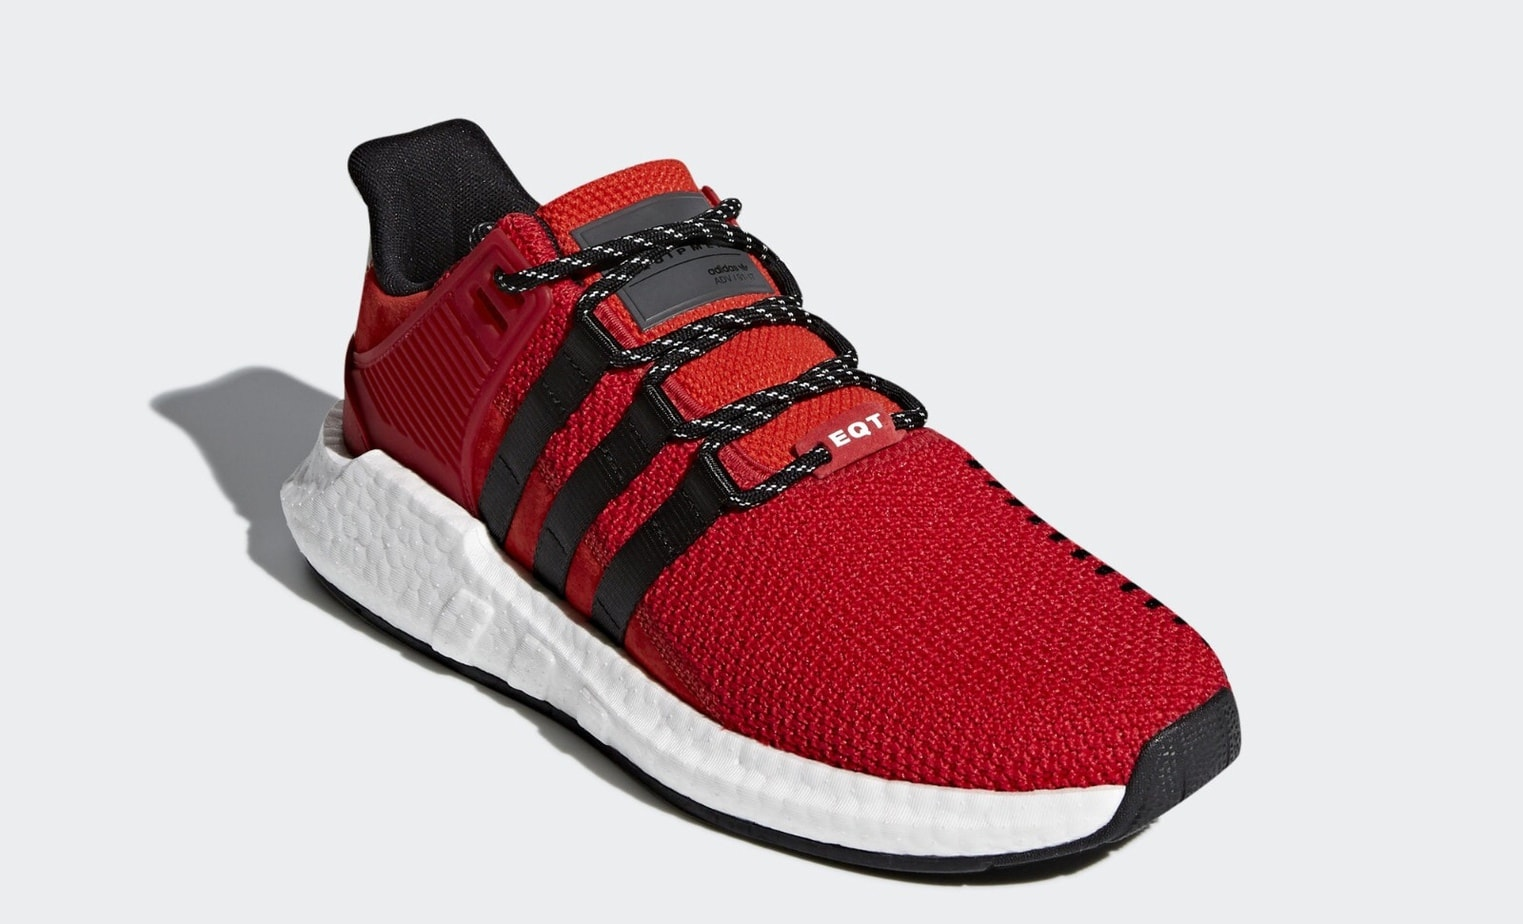 check out a8b6a 76251 The adidas EQT Support 9317 made quite a run in many sneaker of the year  discussions at the end of 2017. It appears as though the Three Stripes is  looking ...